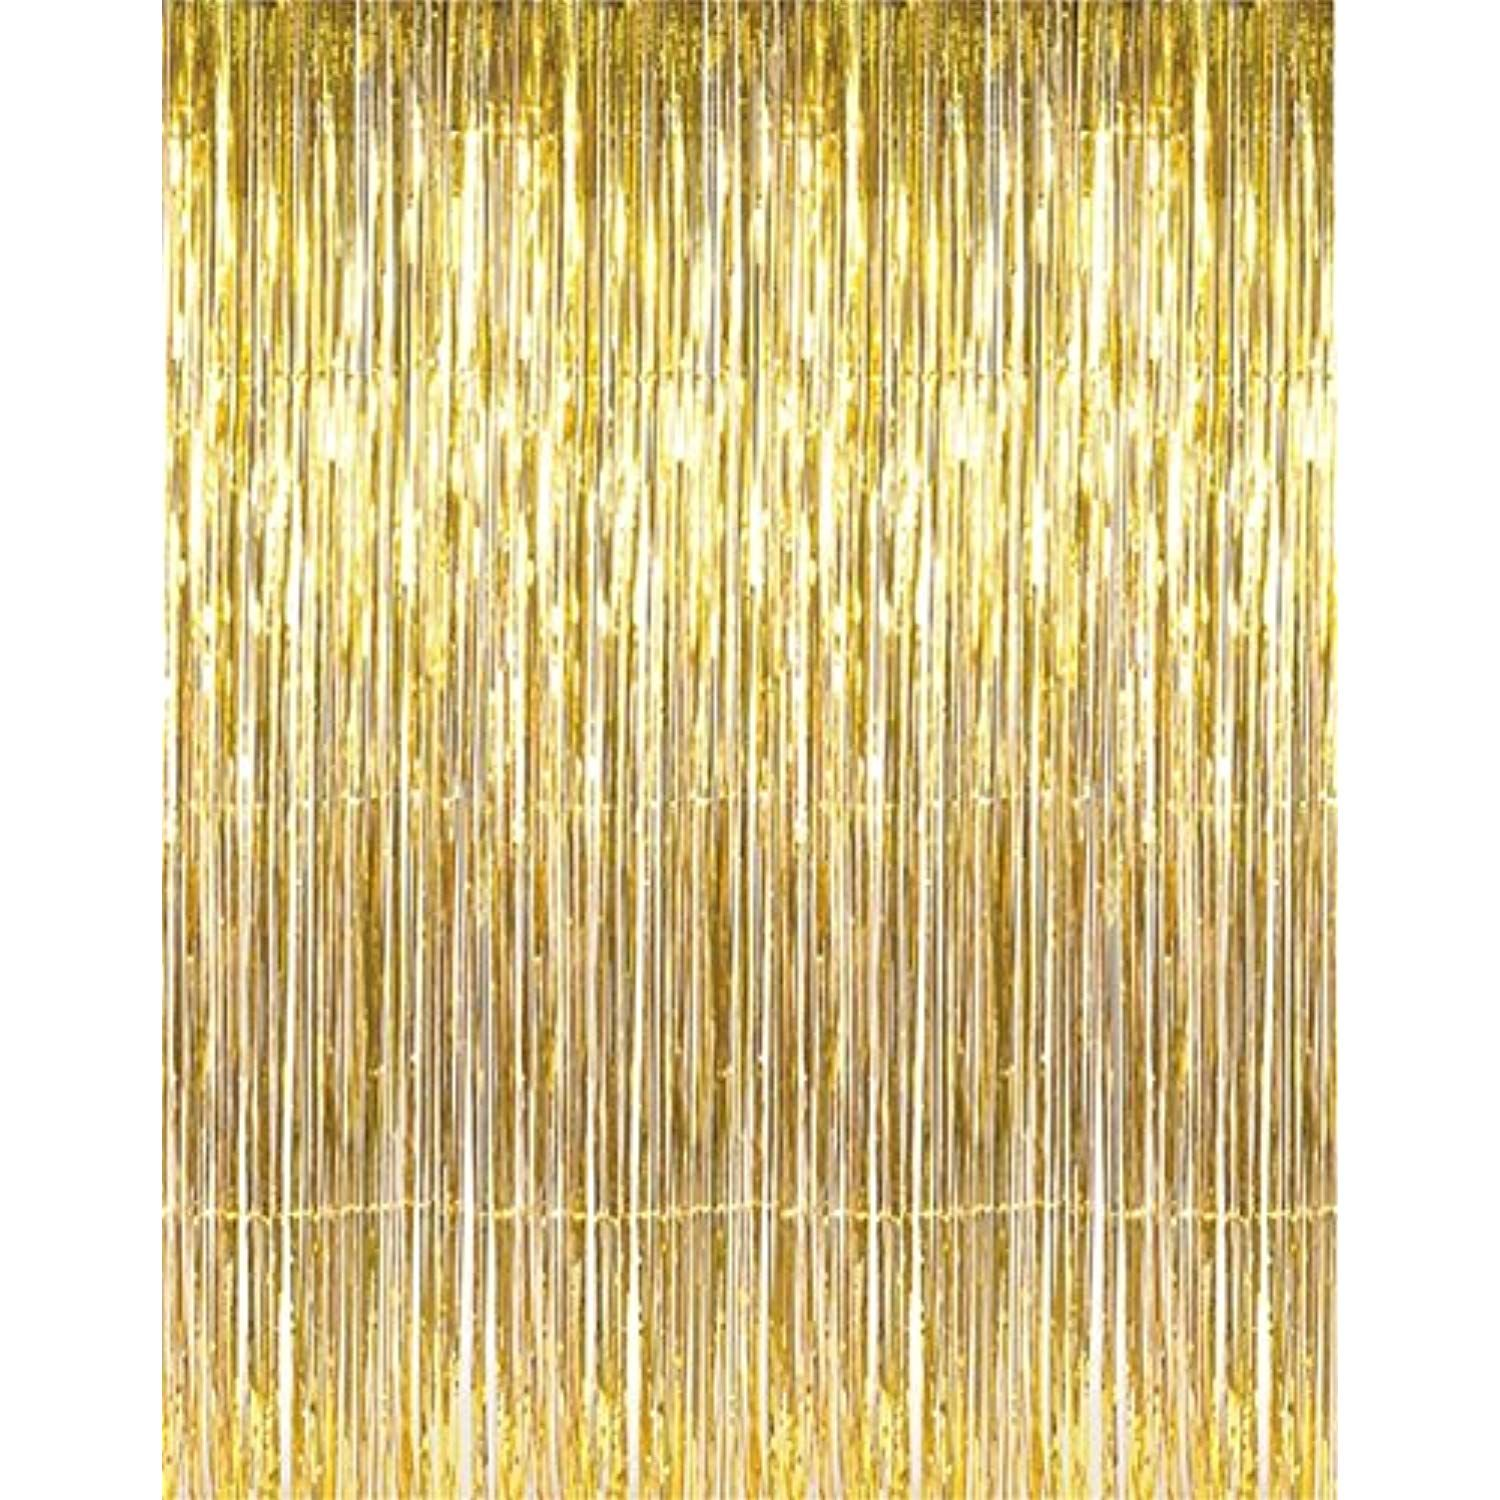 Asunflower 6 5ft Metallic Tinsel Gold Foil Fringe Curtains